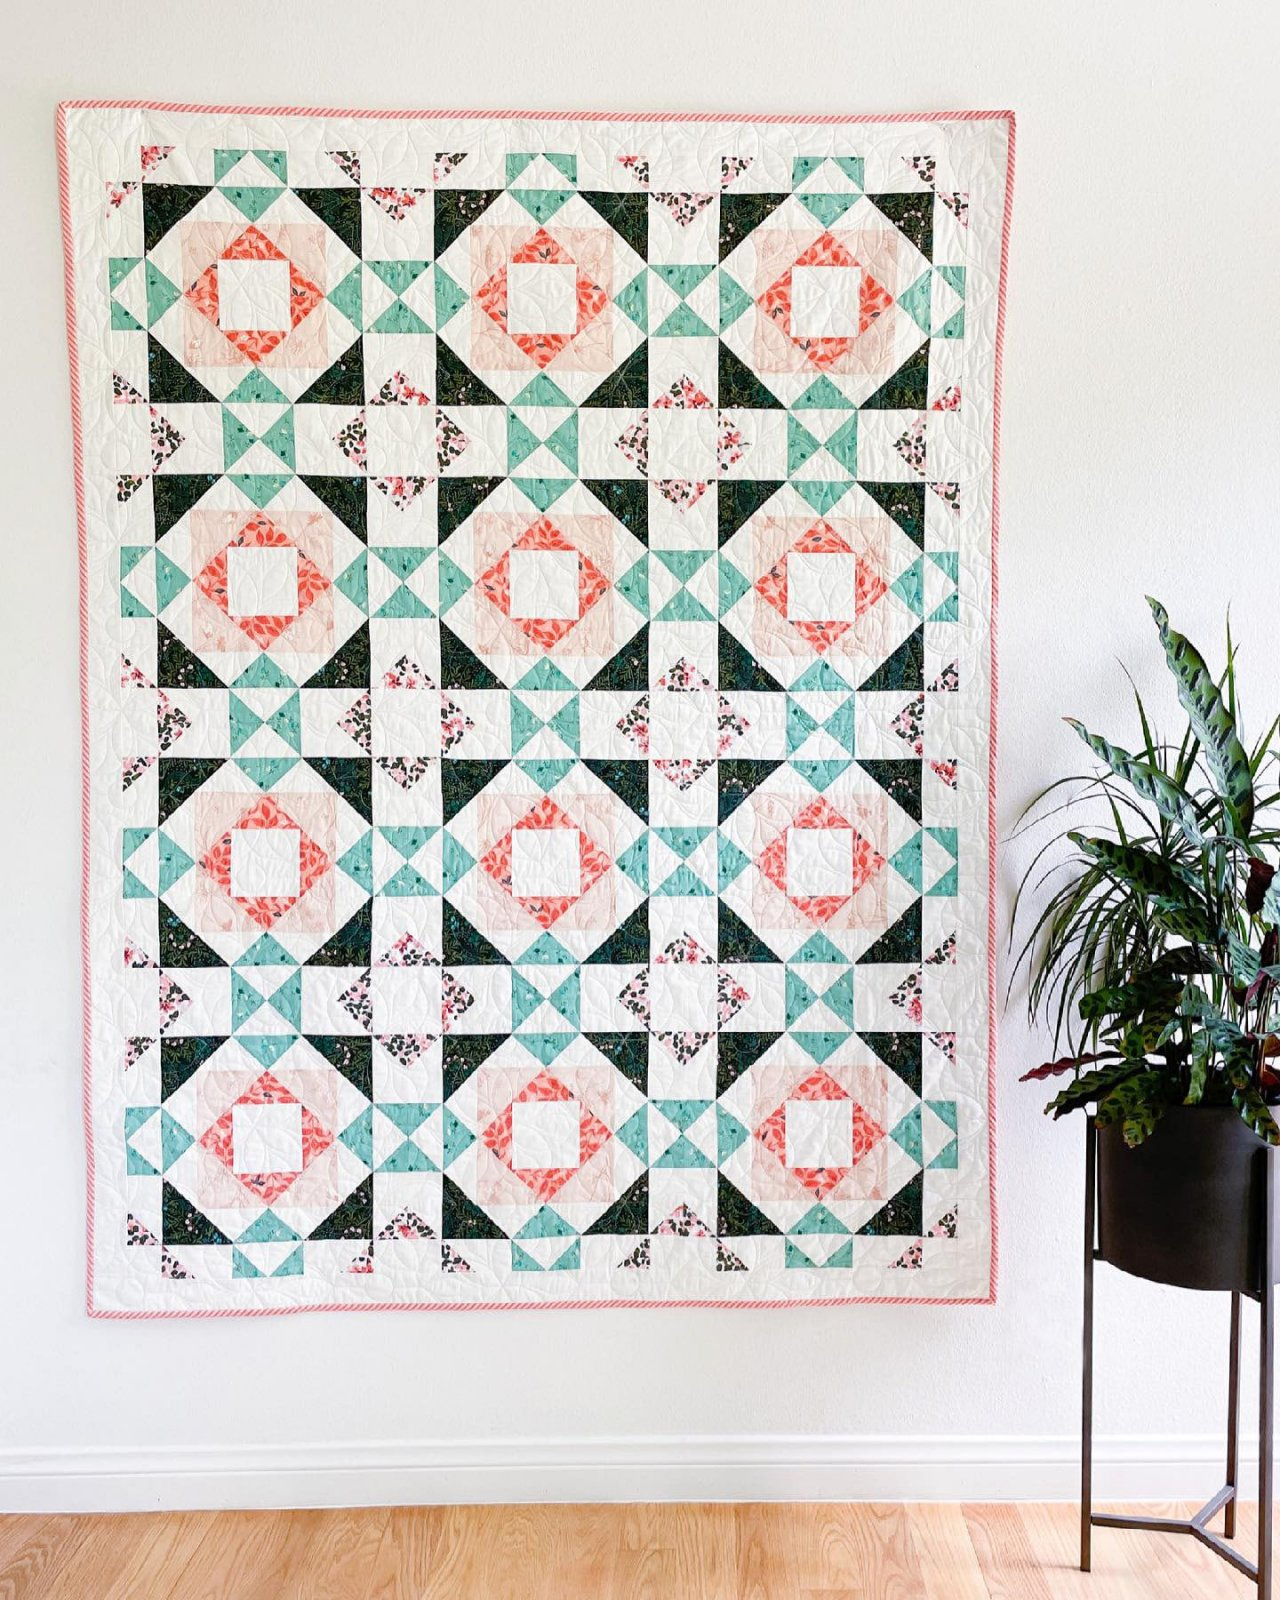 Lava Blooms Quilt Kit With Pattern